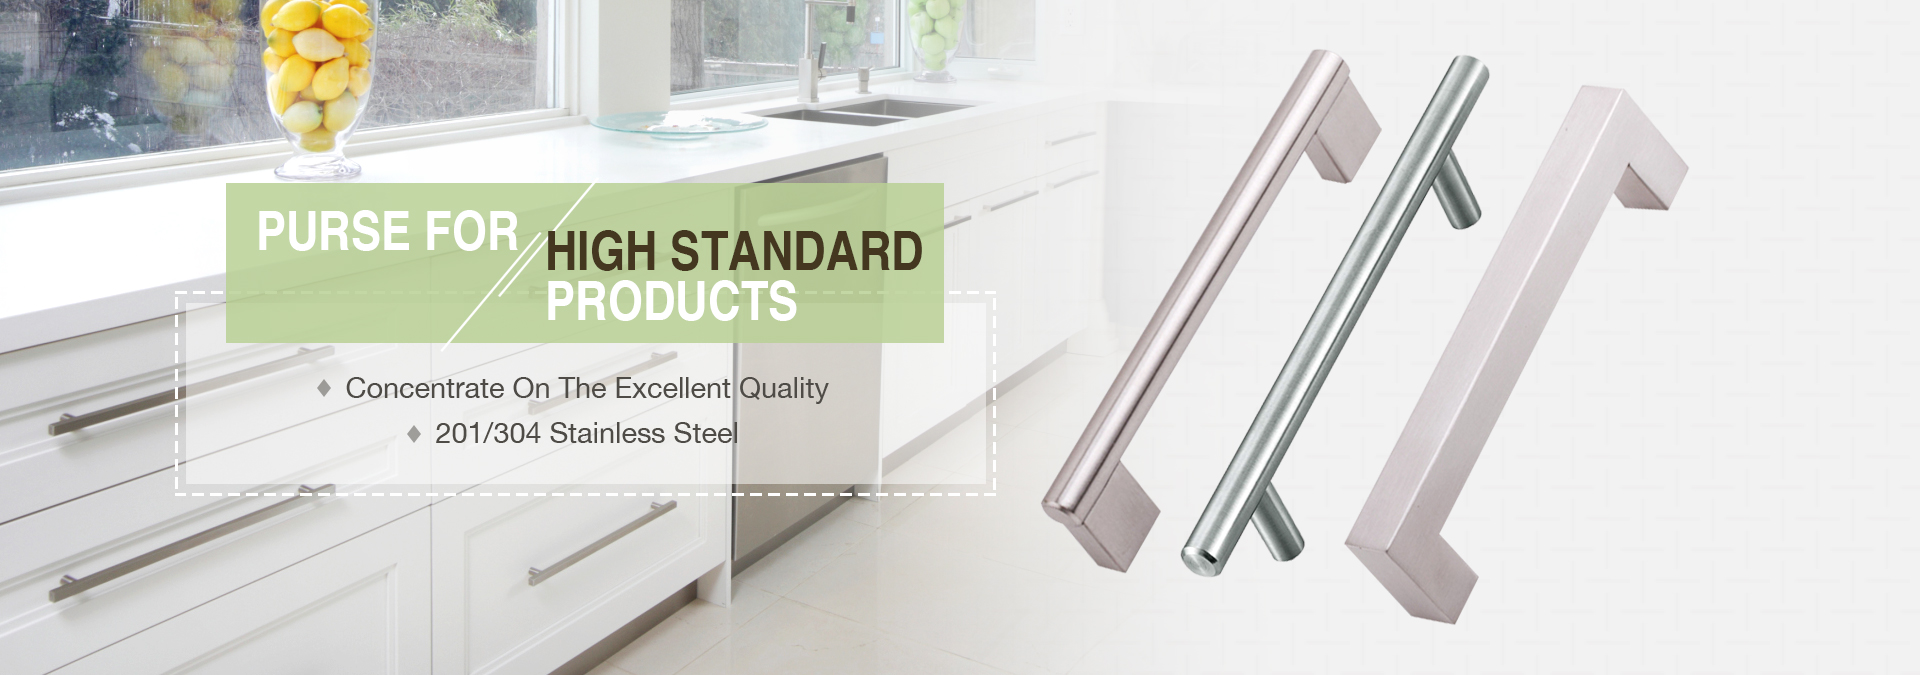 veitop hardware furniture handles stainless steel handle furniture handls